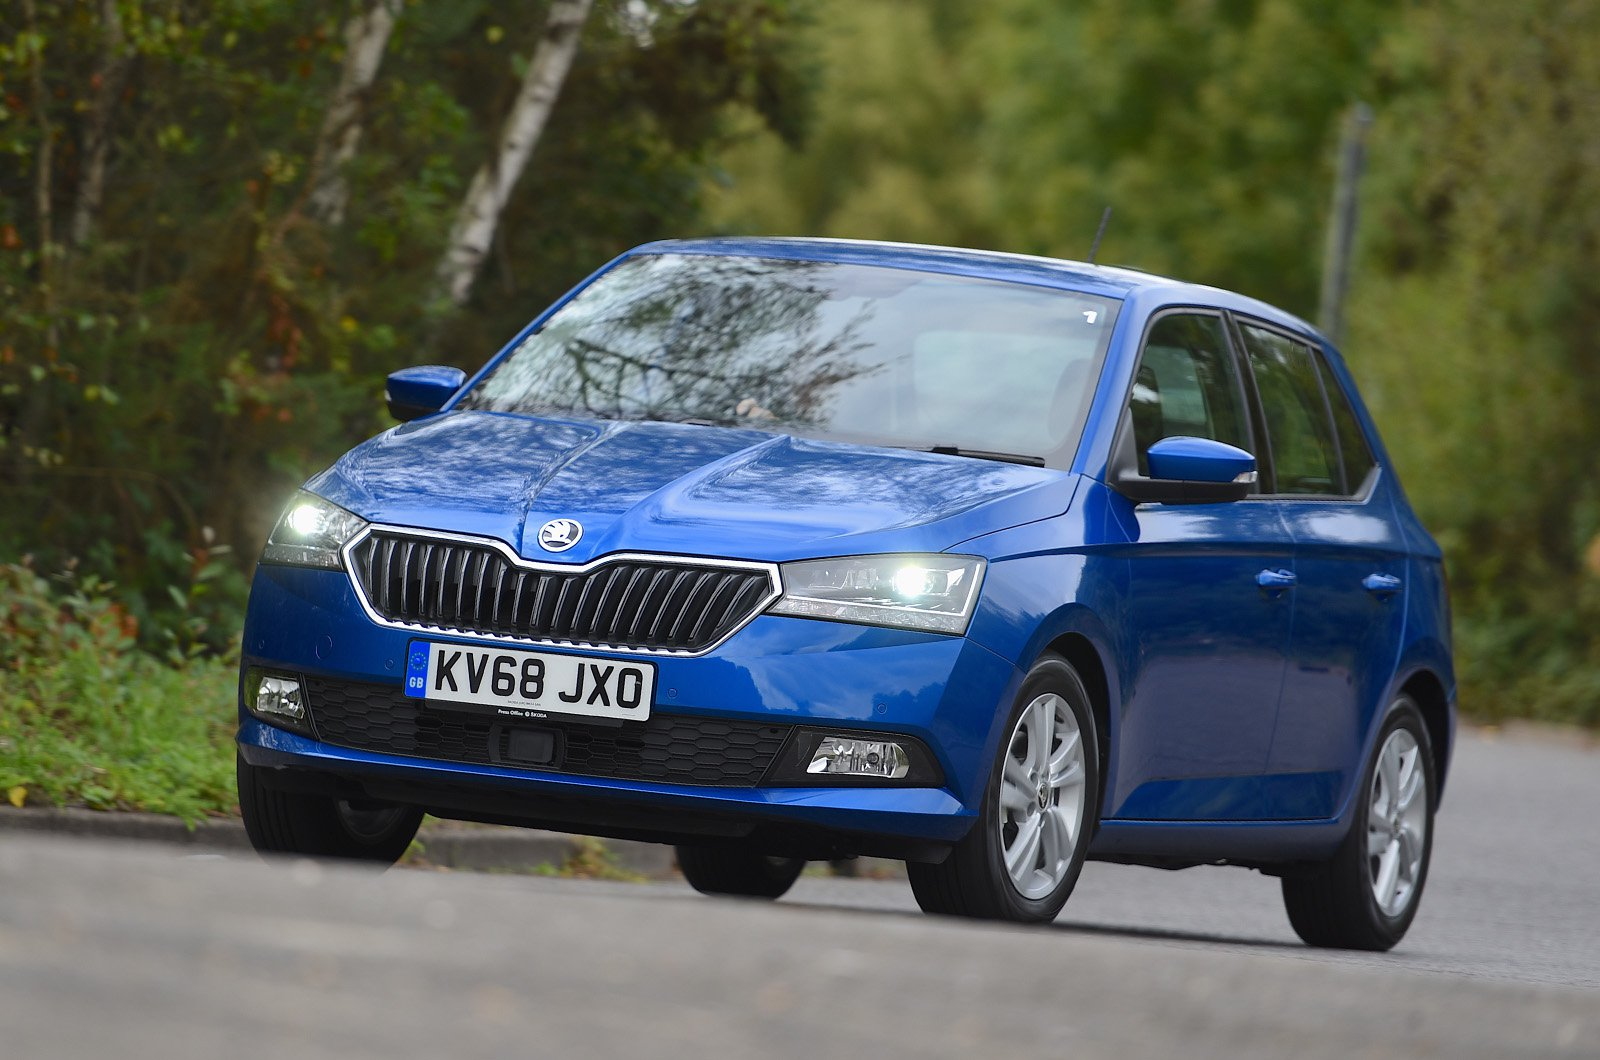 New Skoda Fabia vs used Seat Ibiza